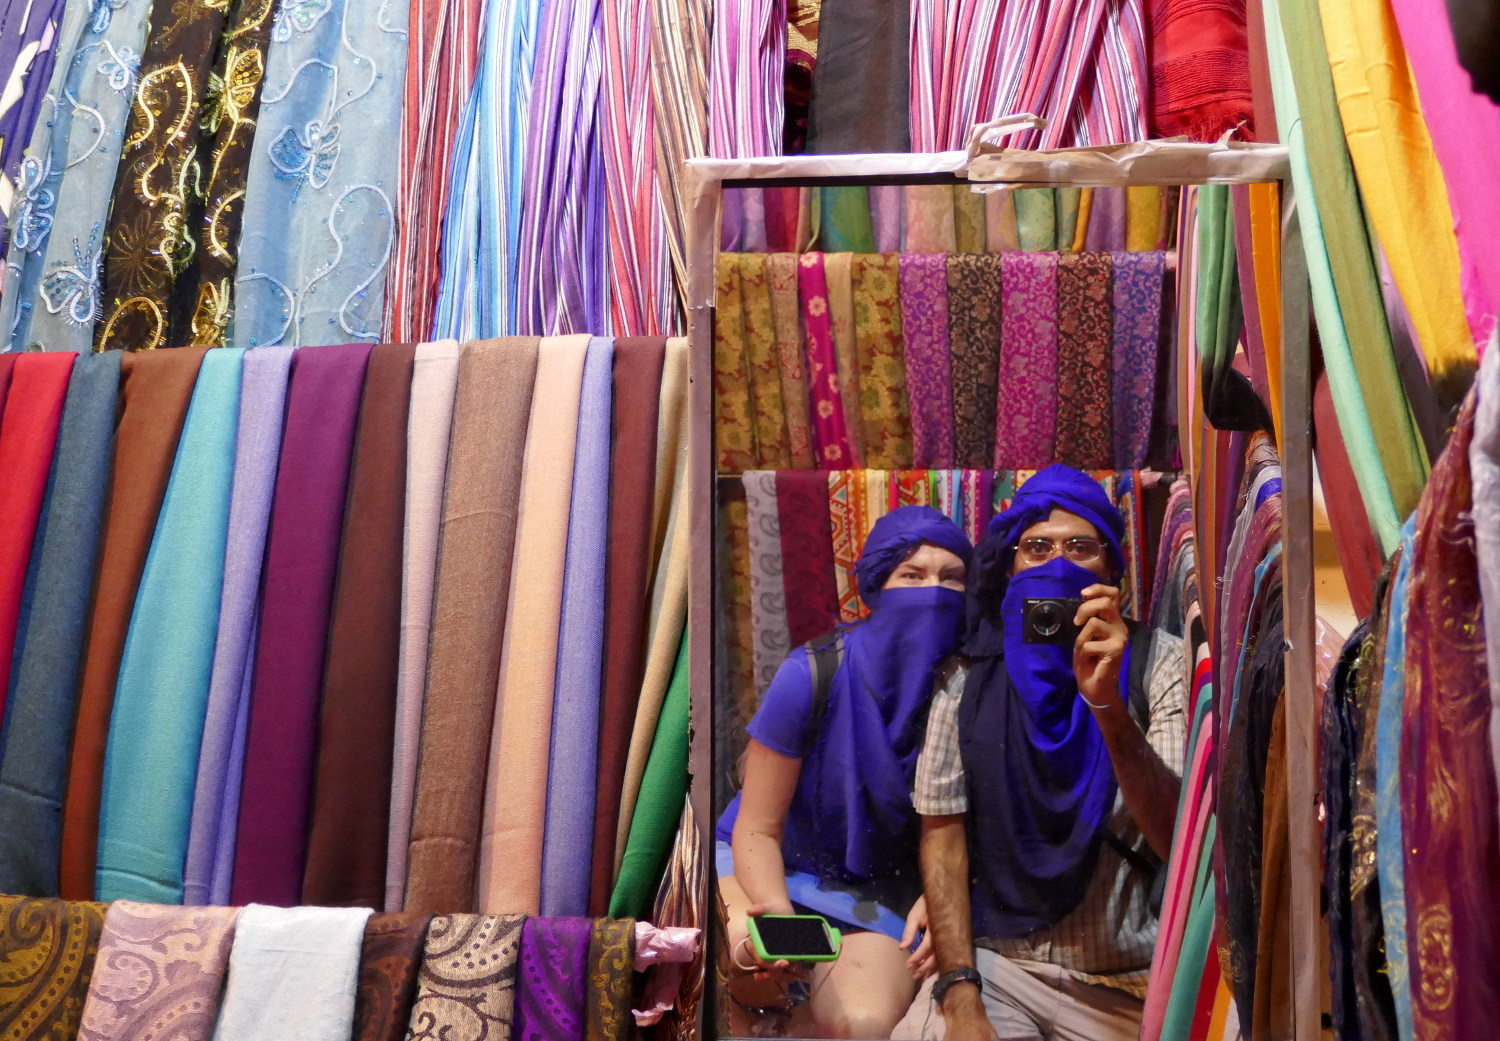 Marrakech Marrakesh Morocco Tourist Tips and travel information city guide how to what to know before you visit where to stay hotels riads souks bargain prices scarves scarfs purchasing cost hassle haggle shops shopping tips